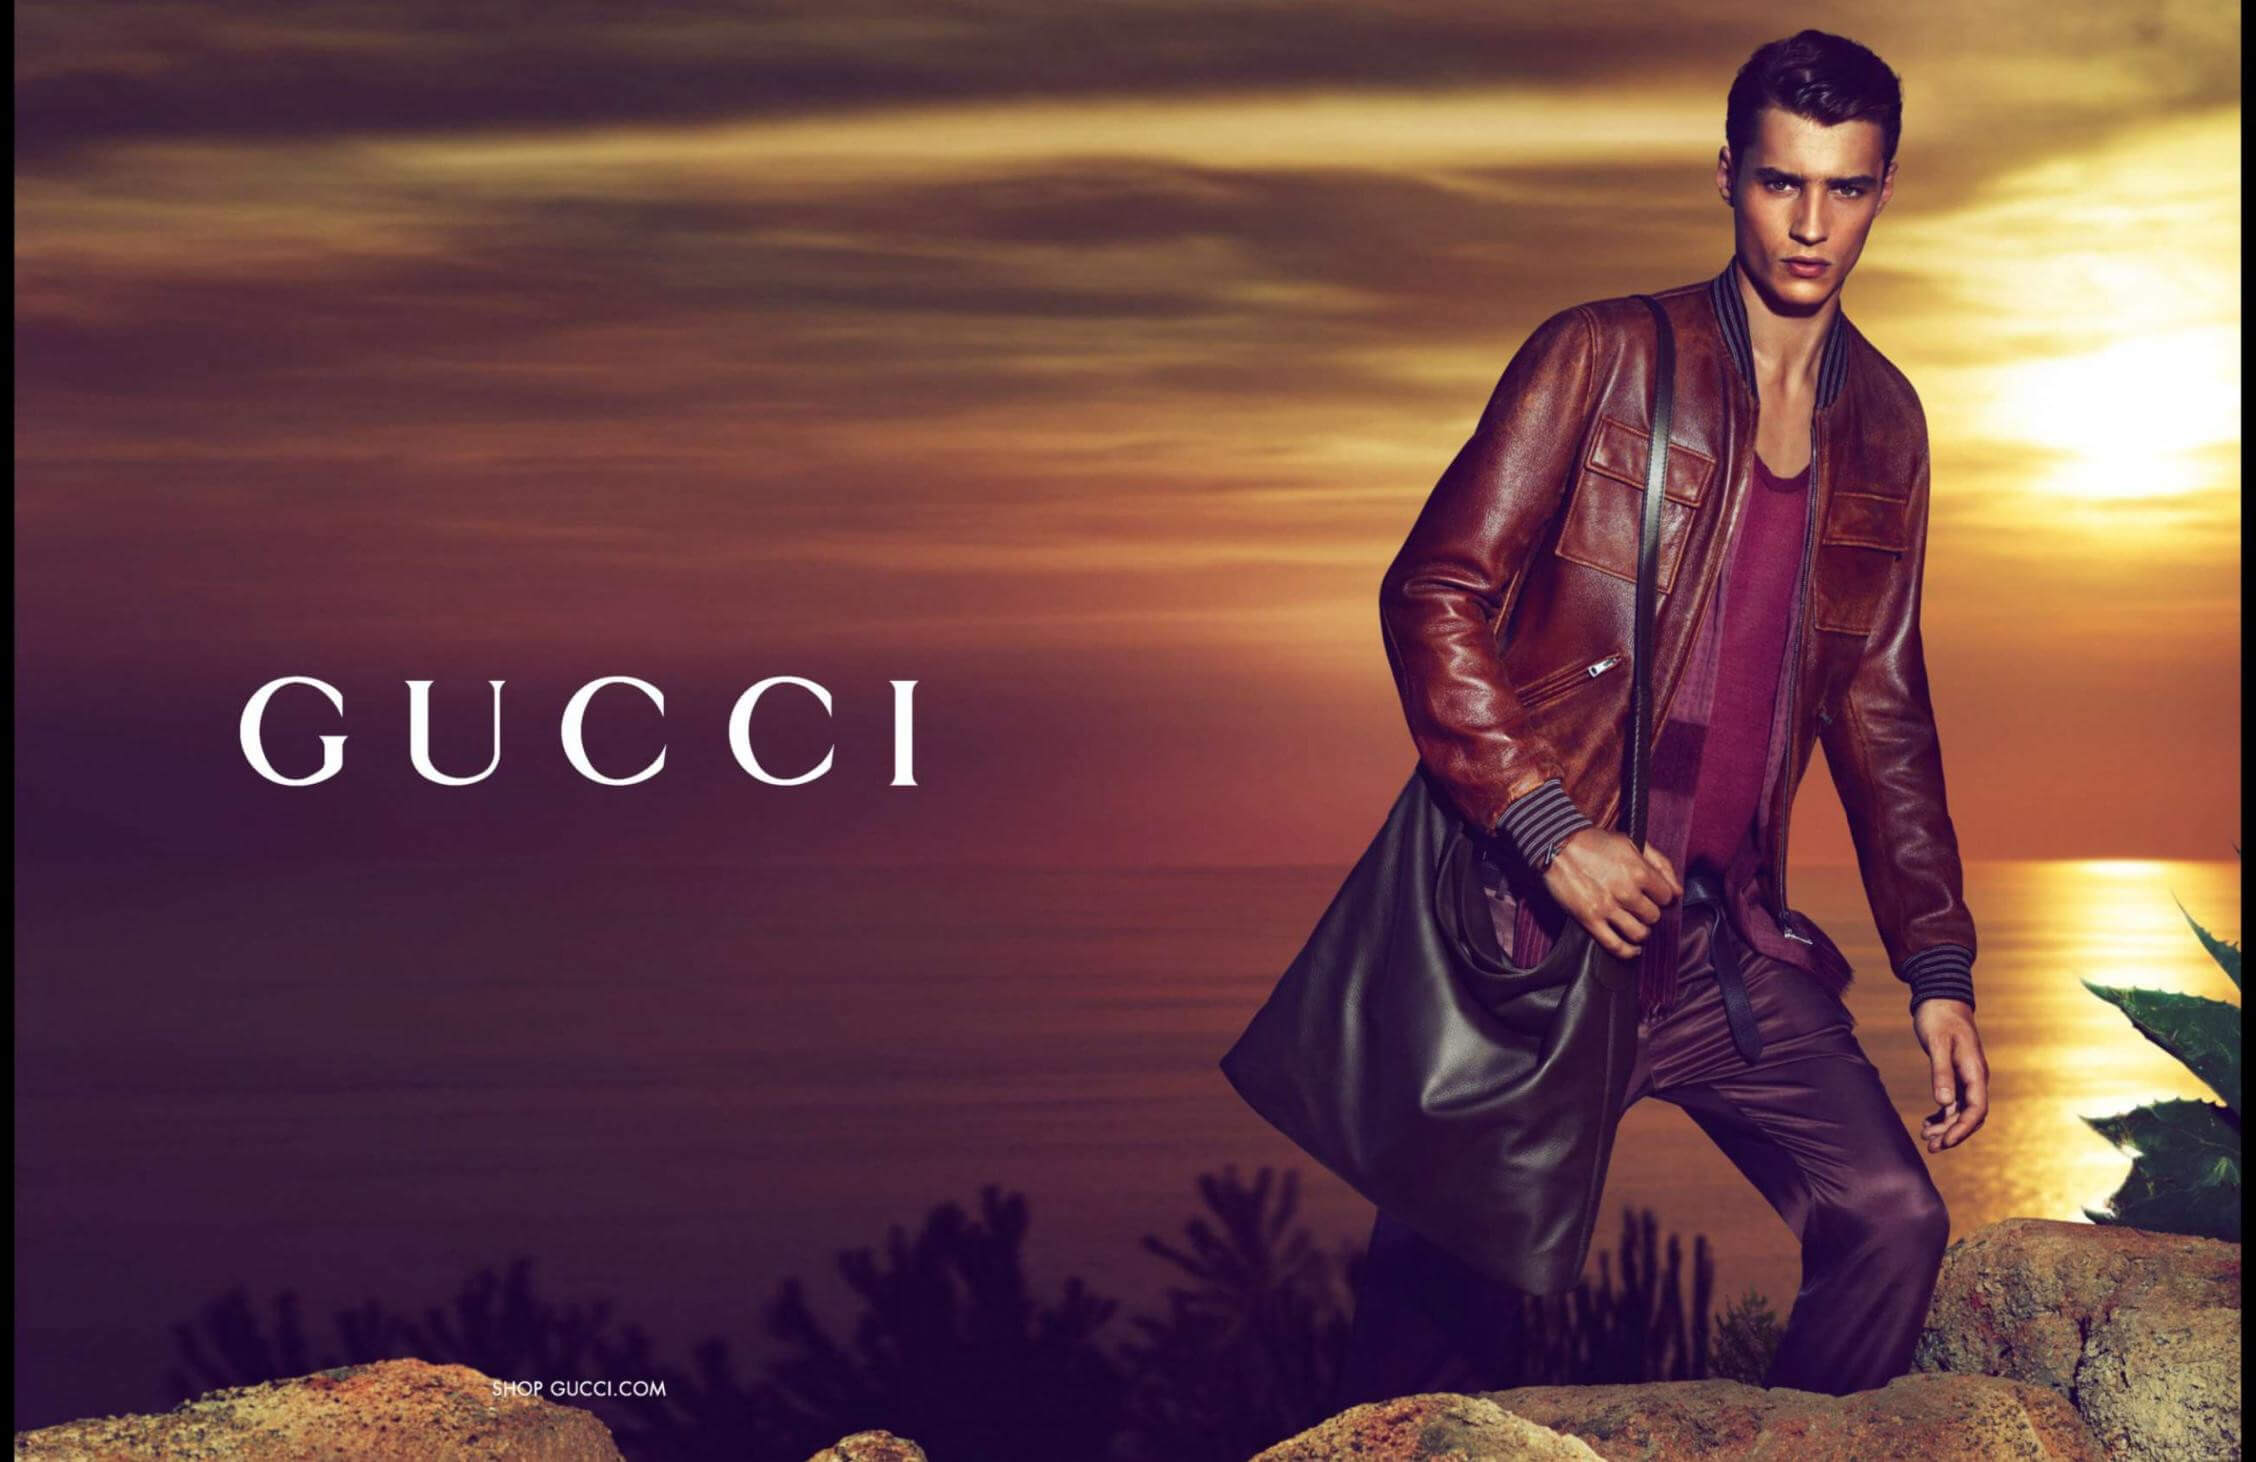 Campanha Gucci - Resort/Cruise 2014